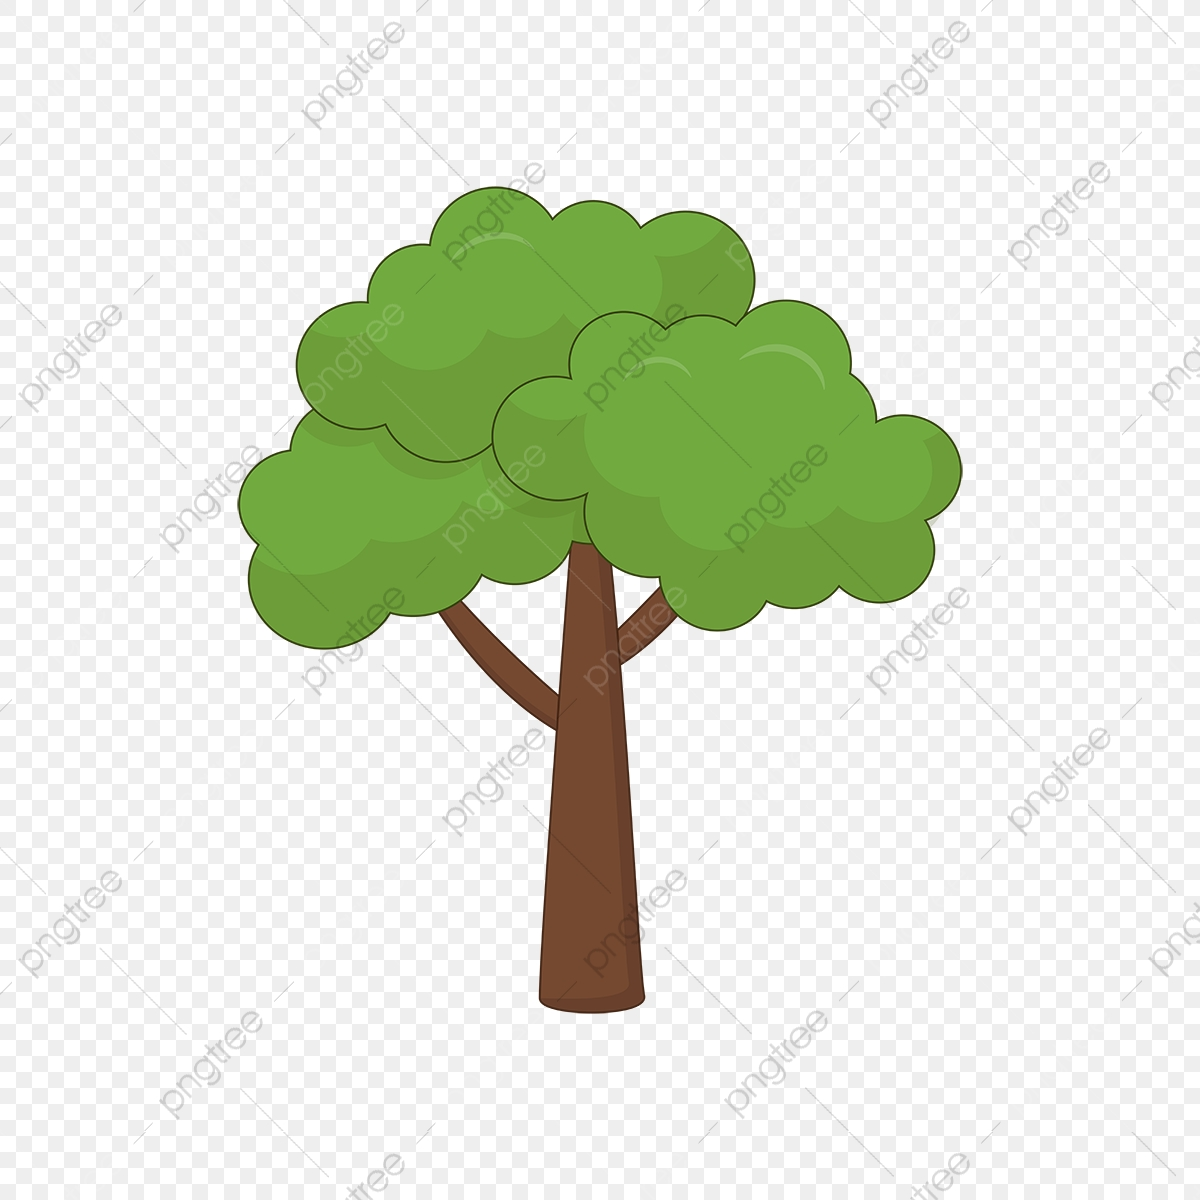 Digital painting background, illustration in cartoon style character. Green Dense Forest Cartoon Trees Material Tree Clipart Tree Green Forest Material Png And Vector With Transparent Background For Free Download